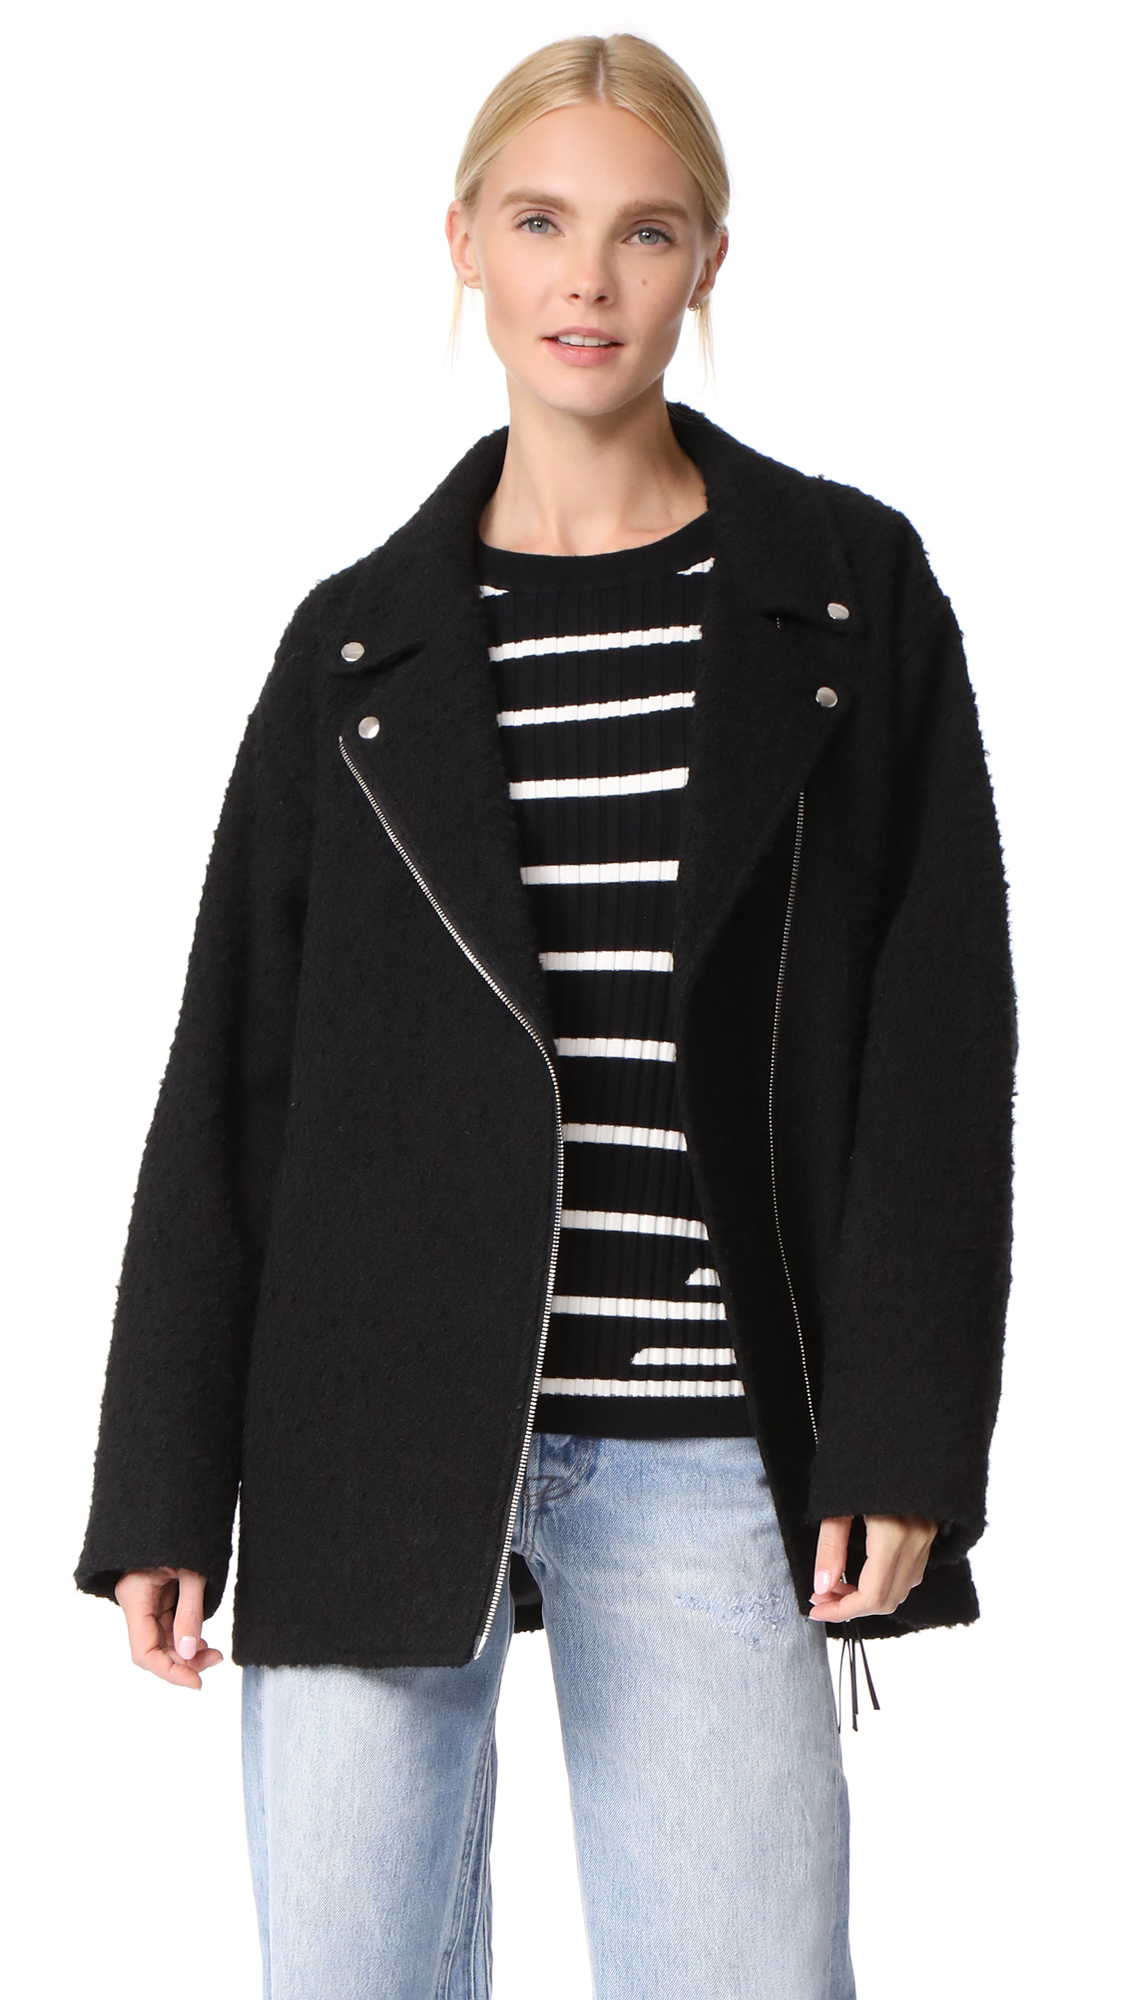 T by Alexander Wang Asymmetrical Notch Collar Coat - Black